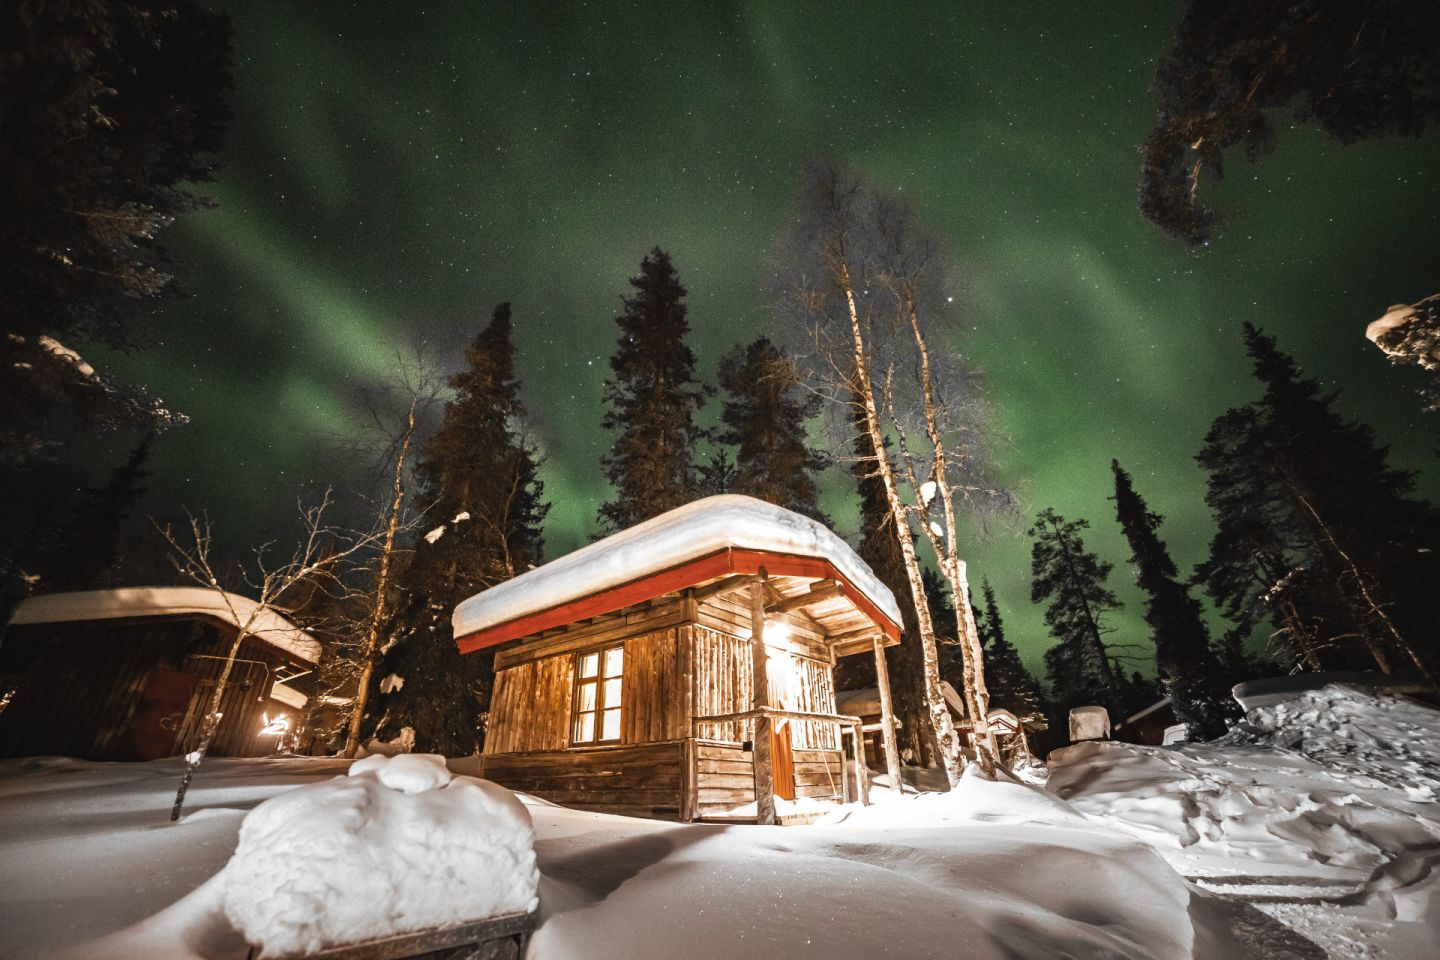 Northern Lights over a log cabin at Tankavaara Gold Village, a special winter accommodation in Sompio, Finland